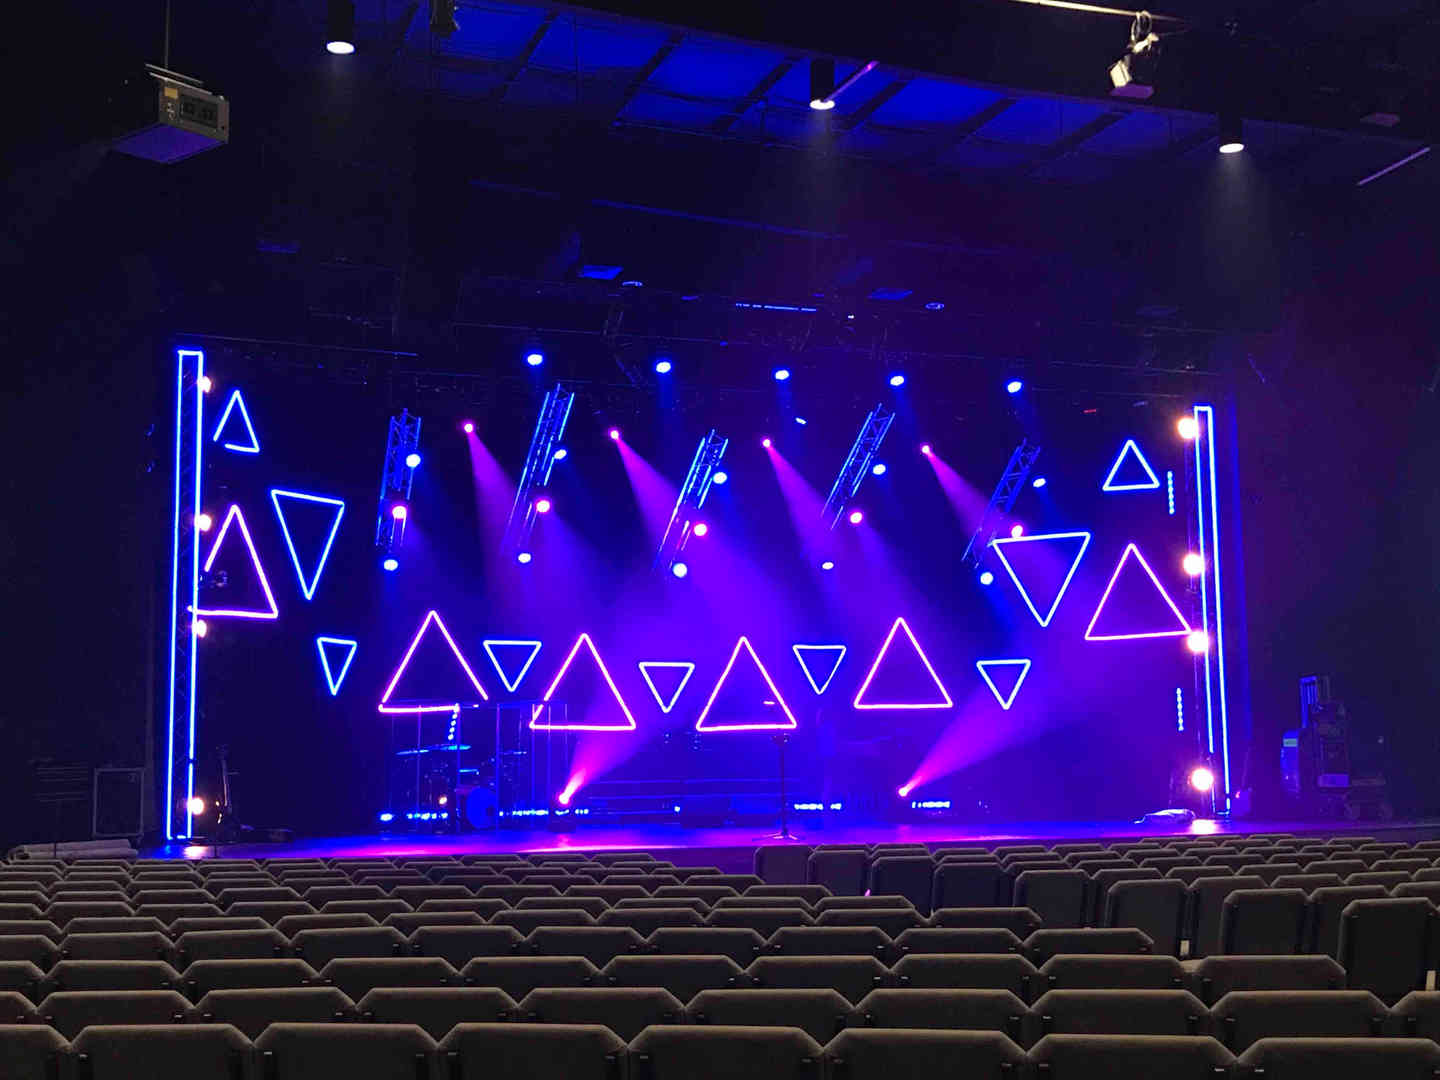 040 Lighting & LED Bars.jpg